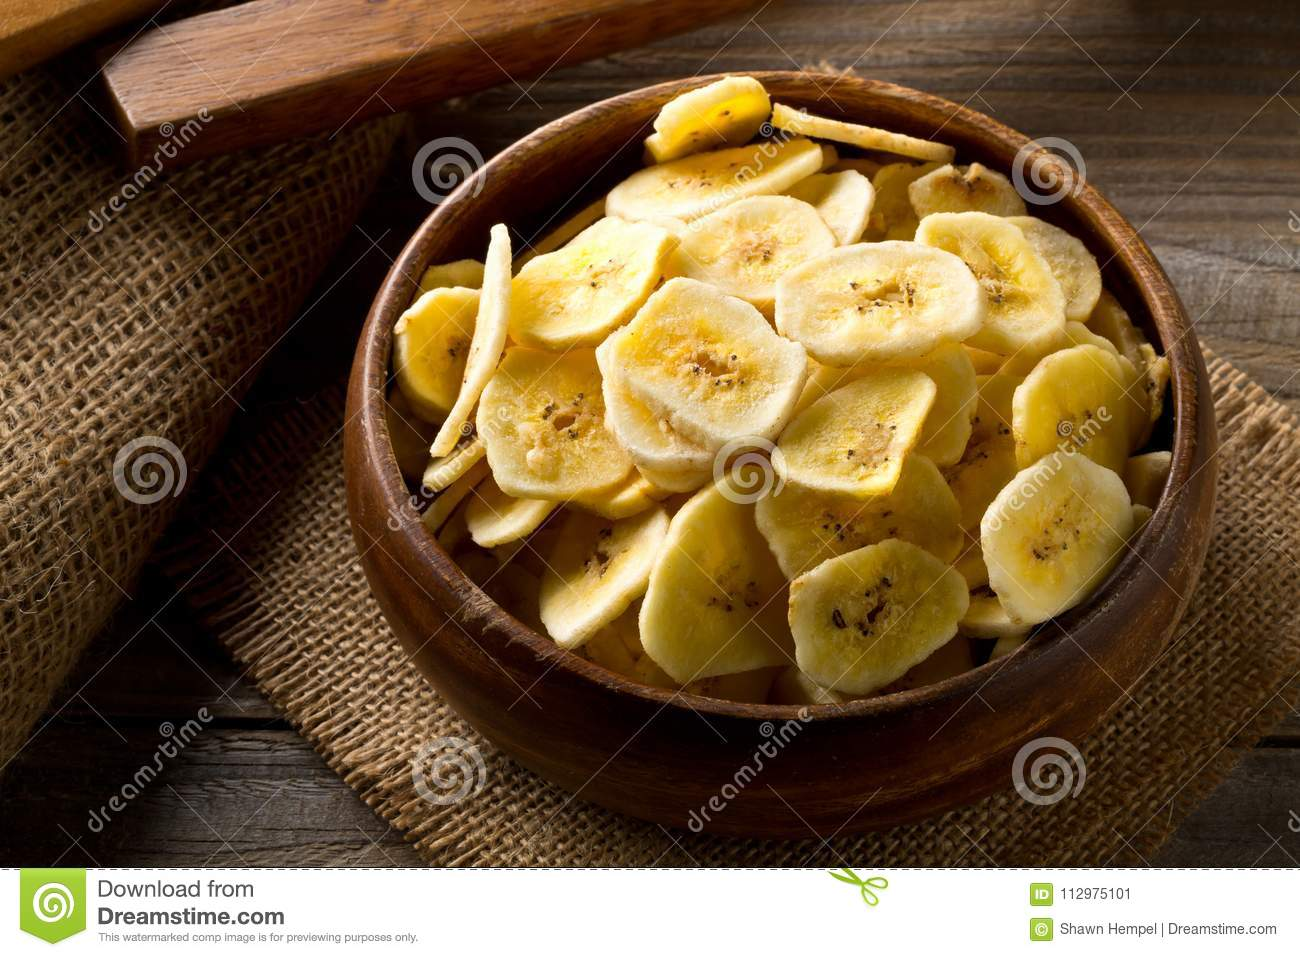 Heap of dried banana chips snack in wooden bowl on dark table